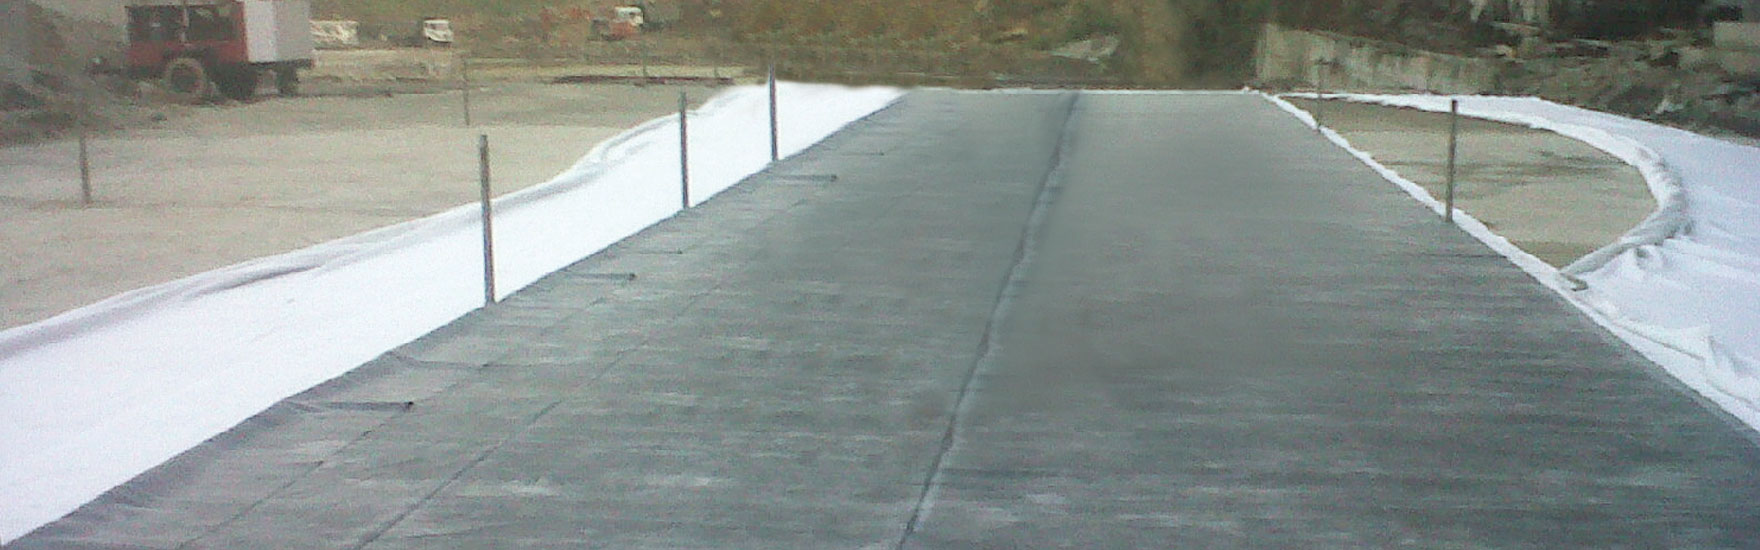 EPDM Rubber Waterproofing Membrane